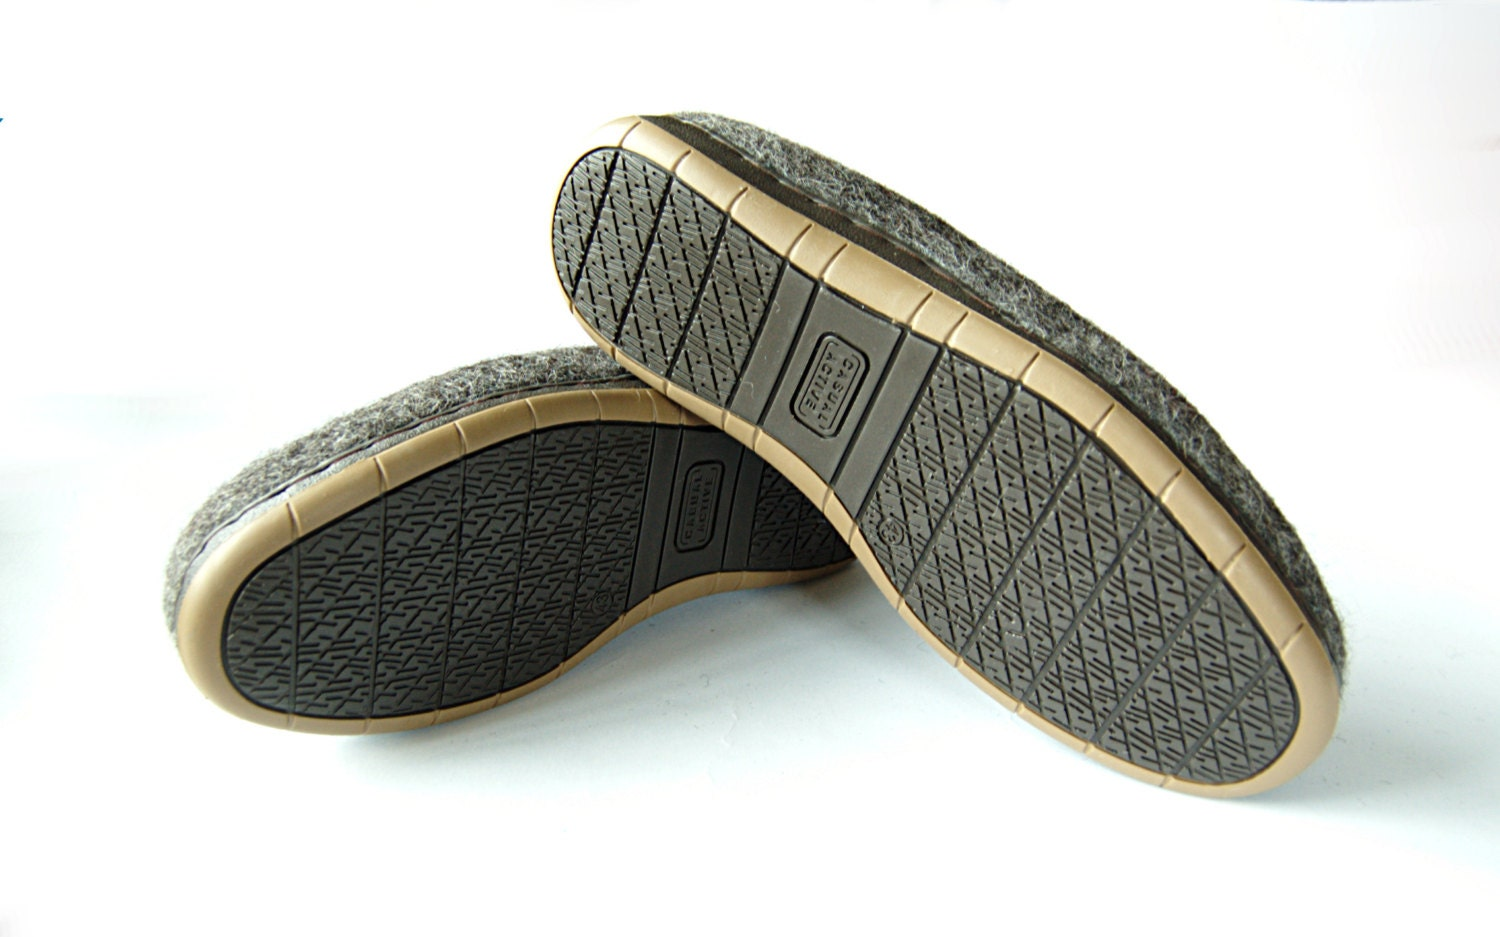 thin soles for or shoes from sturdy rubber